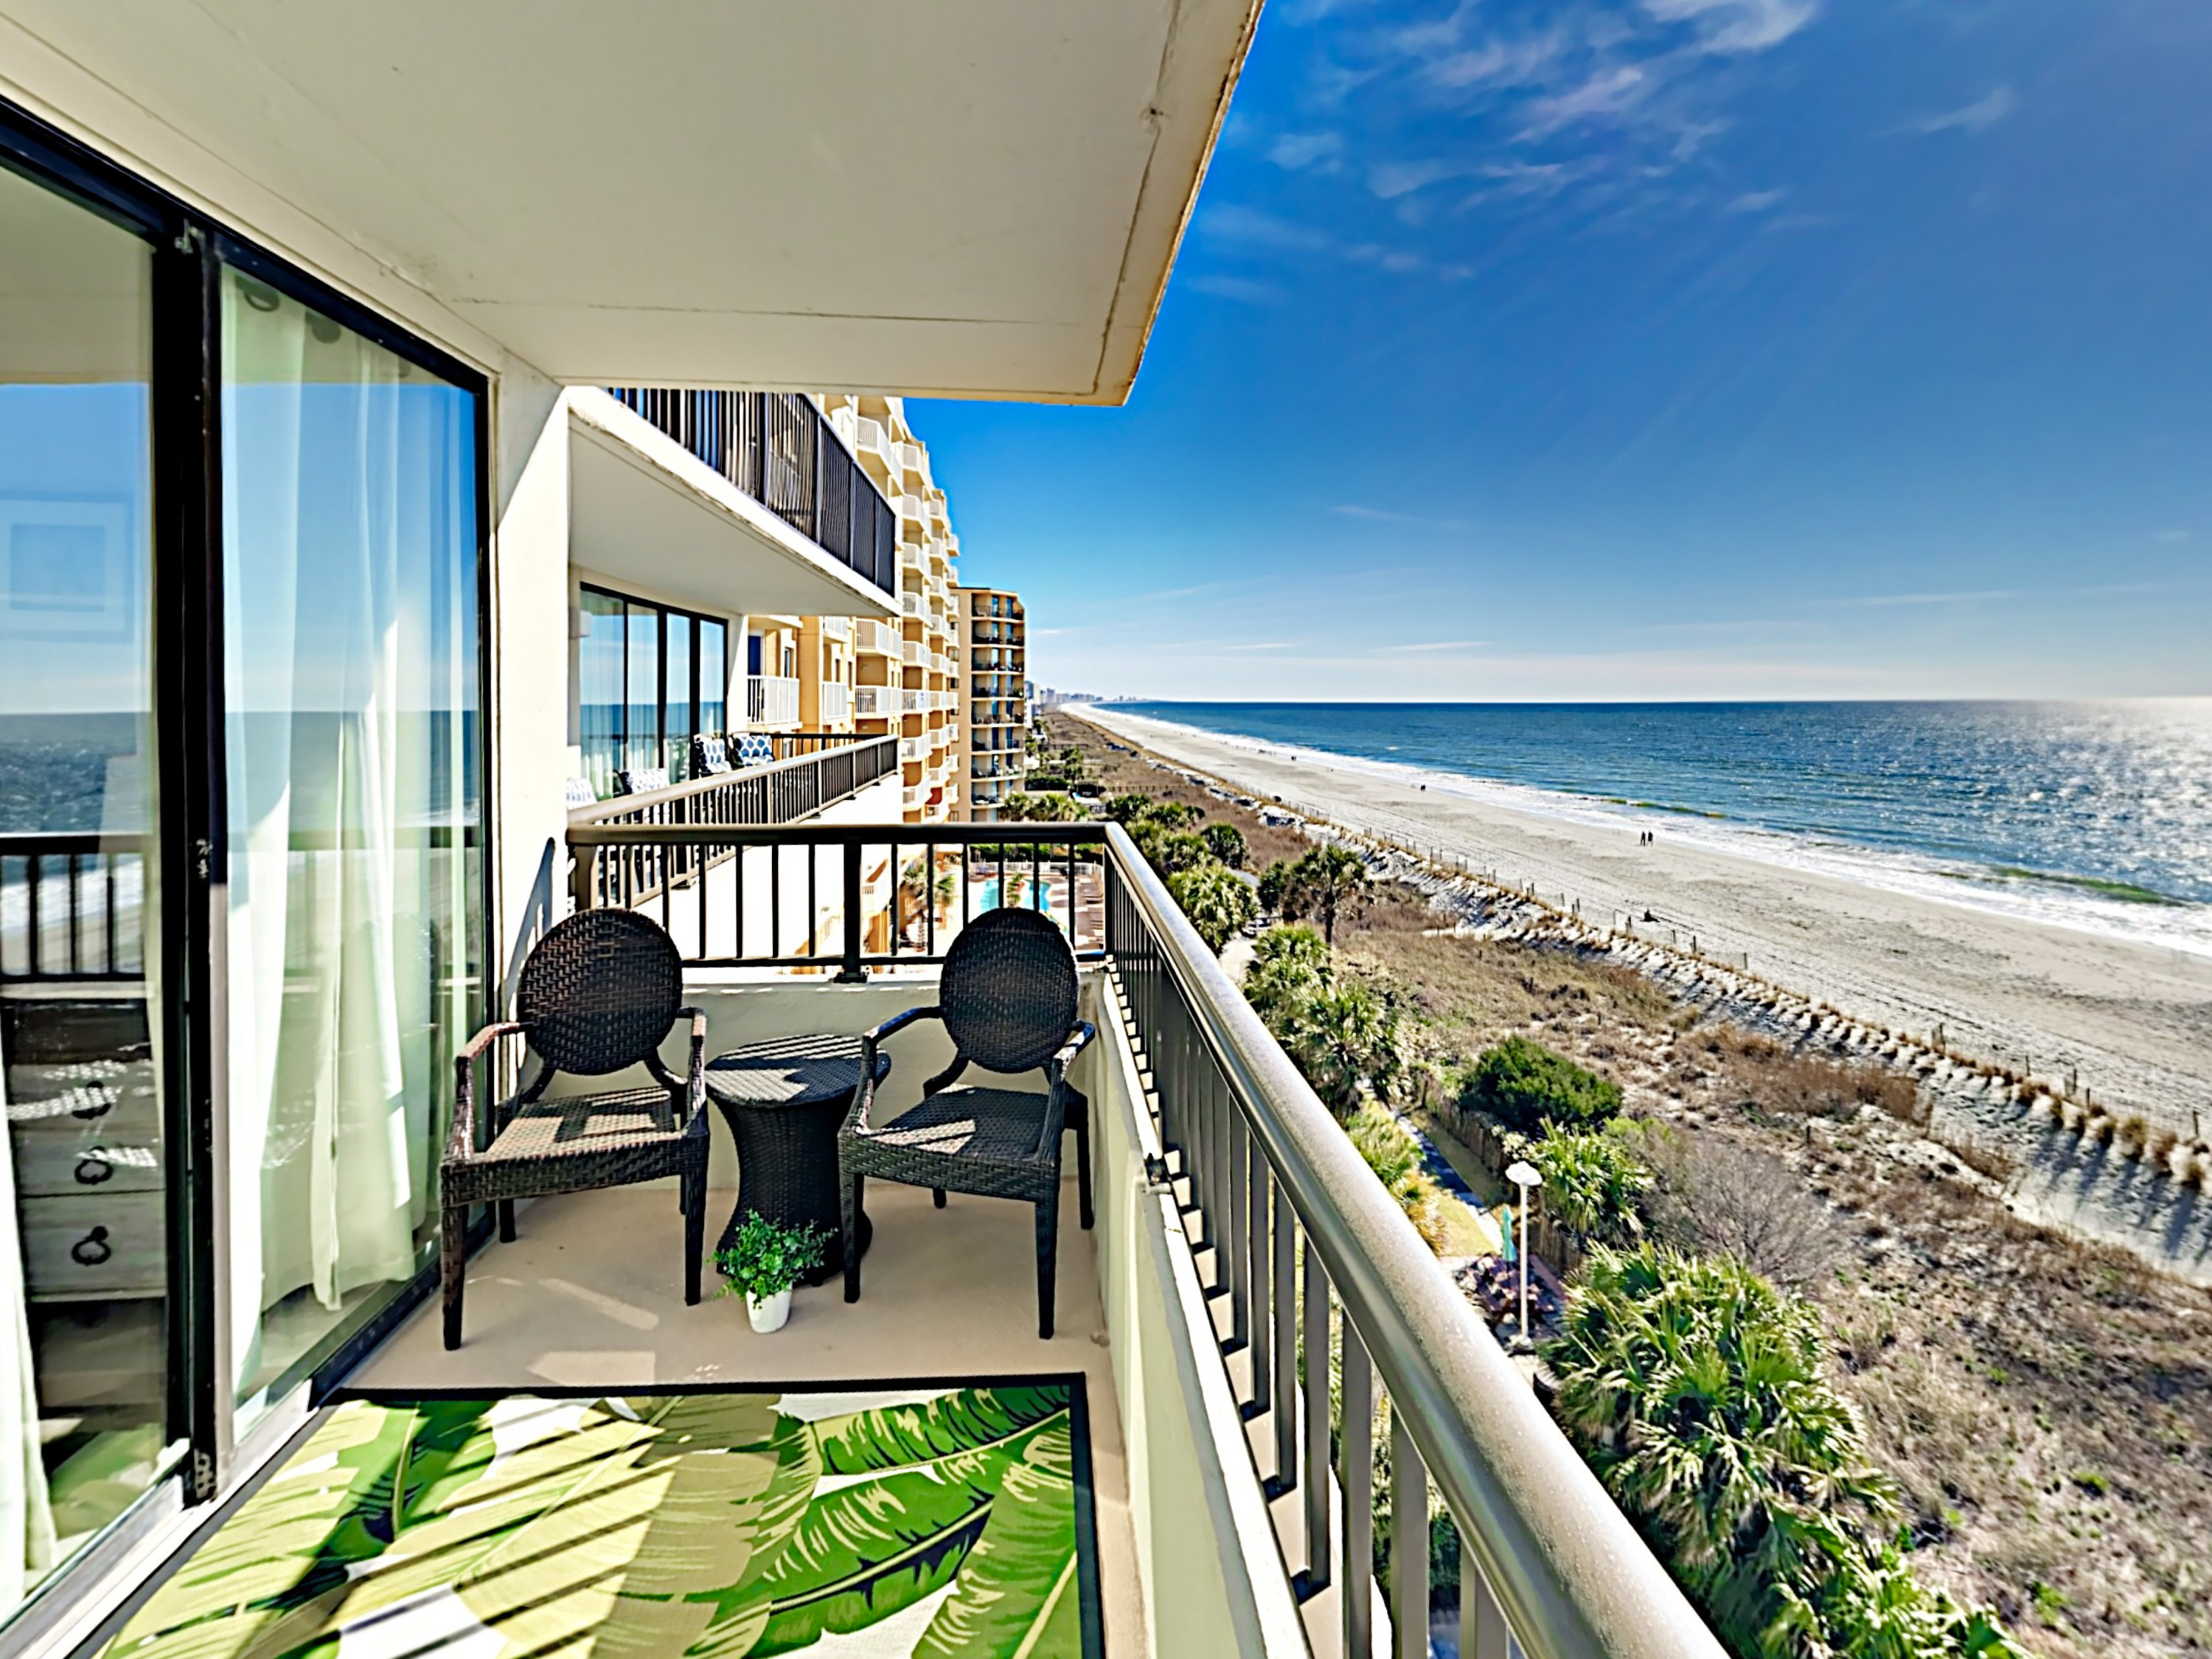 North Myrtle Beach SC Vacation Rental Welcome to Myrtle